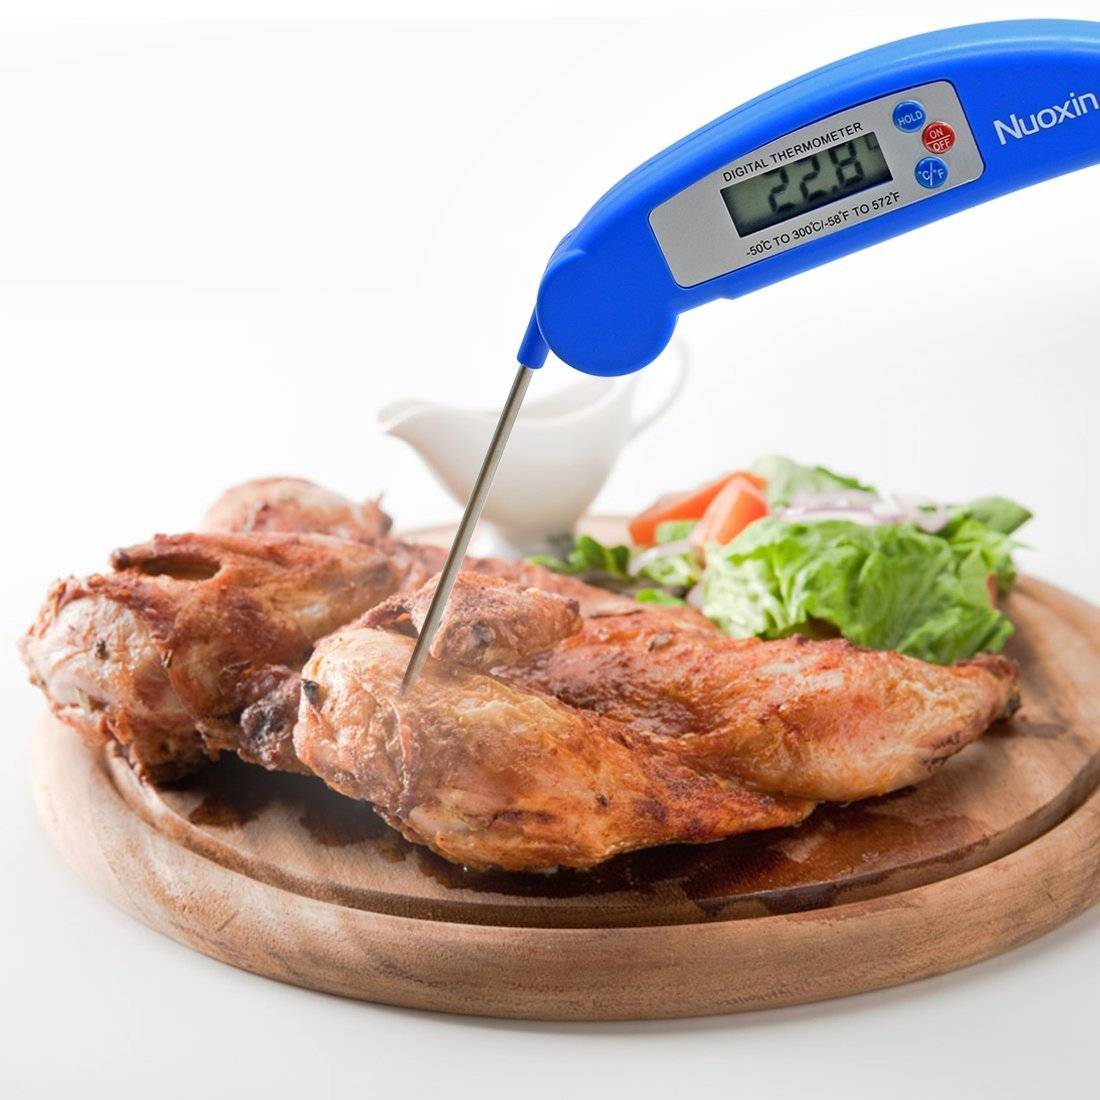 Digital Food Thermometer for Cooking Kitchen BBQ